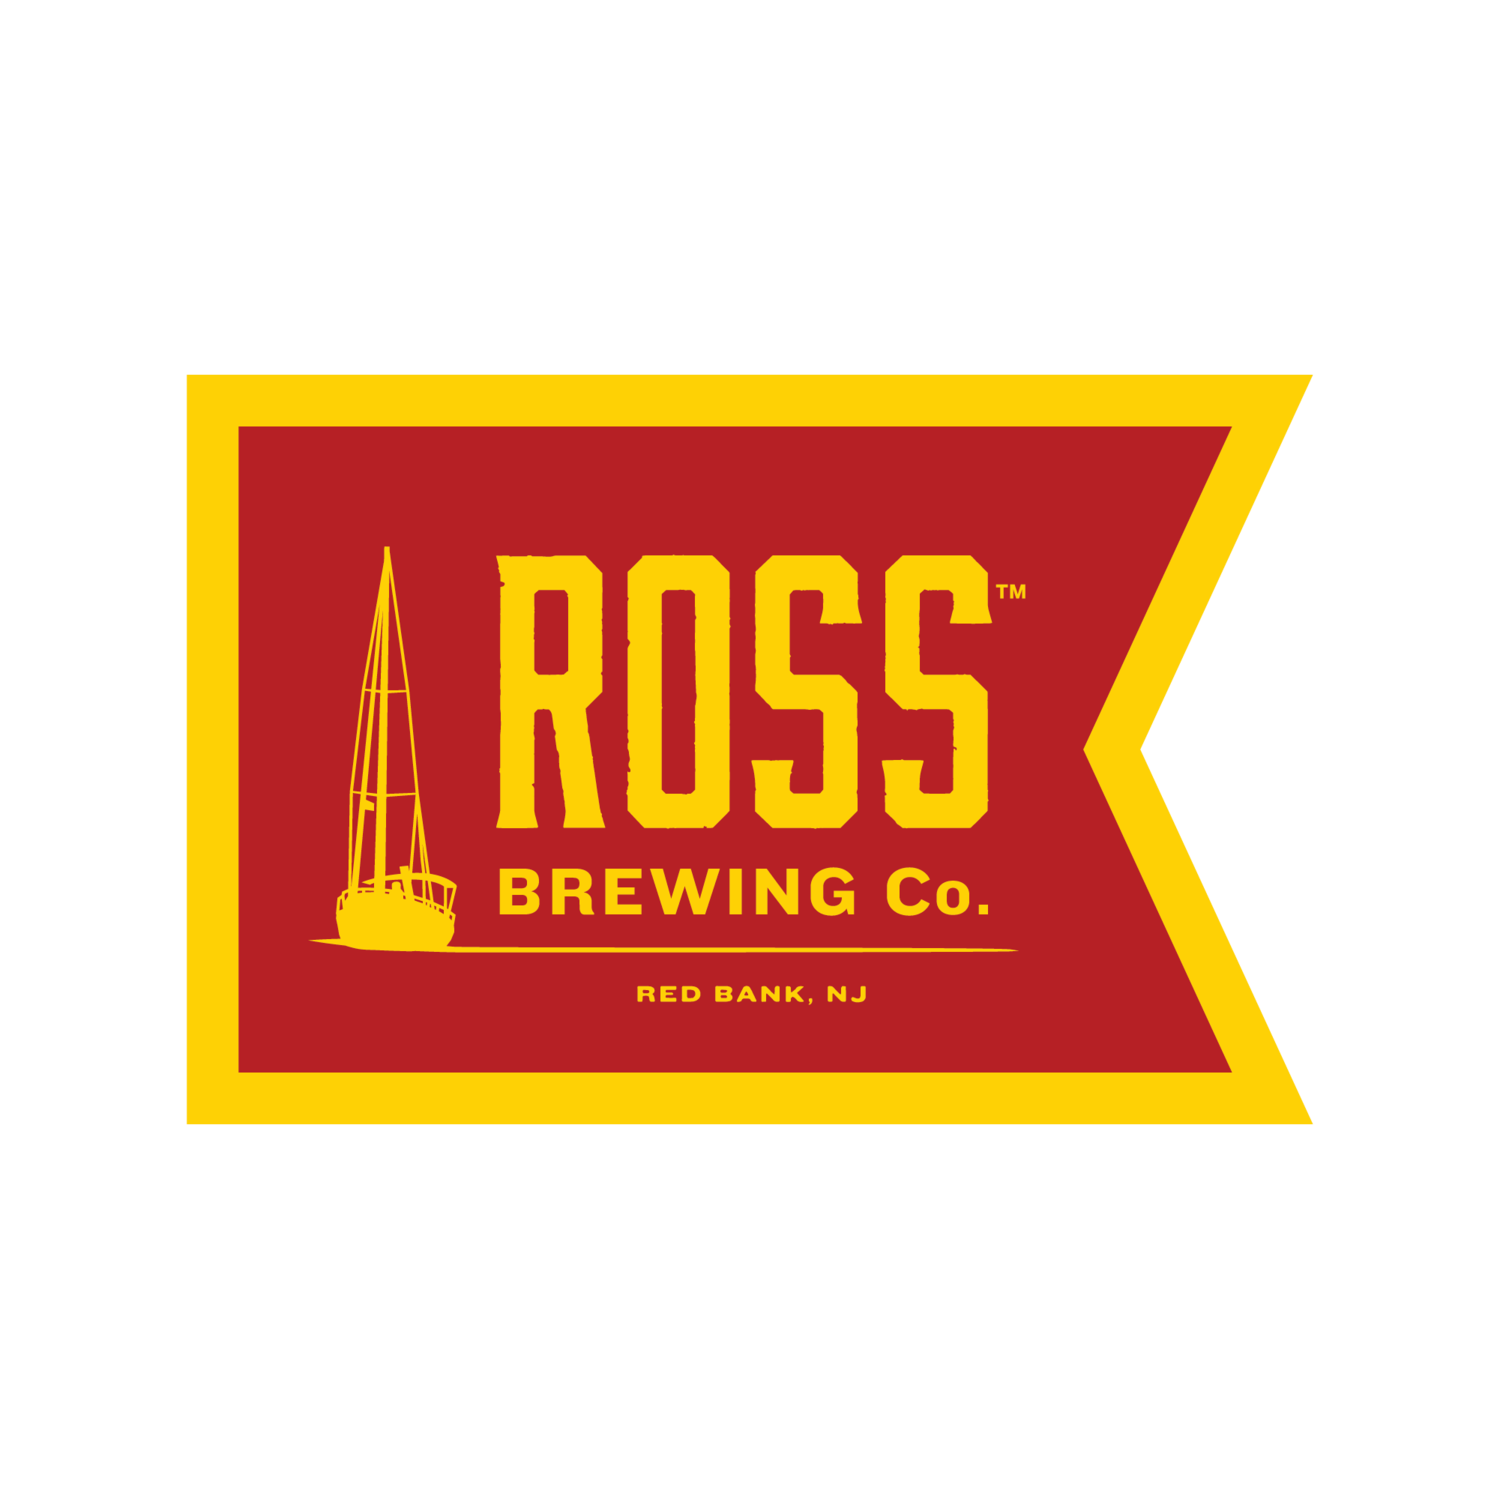 Ross Brewing Company